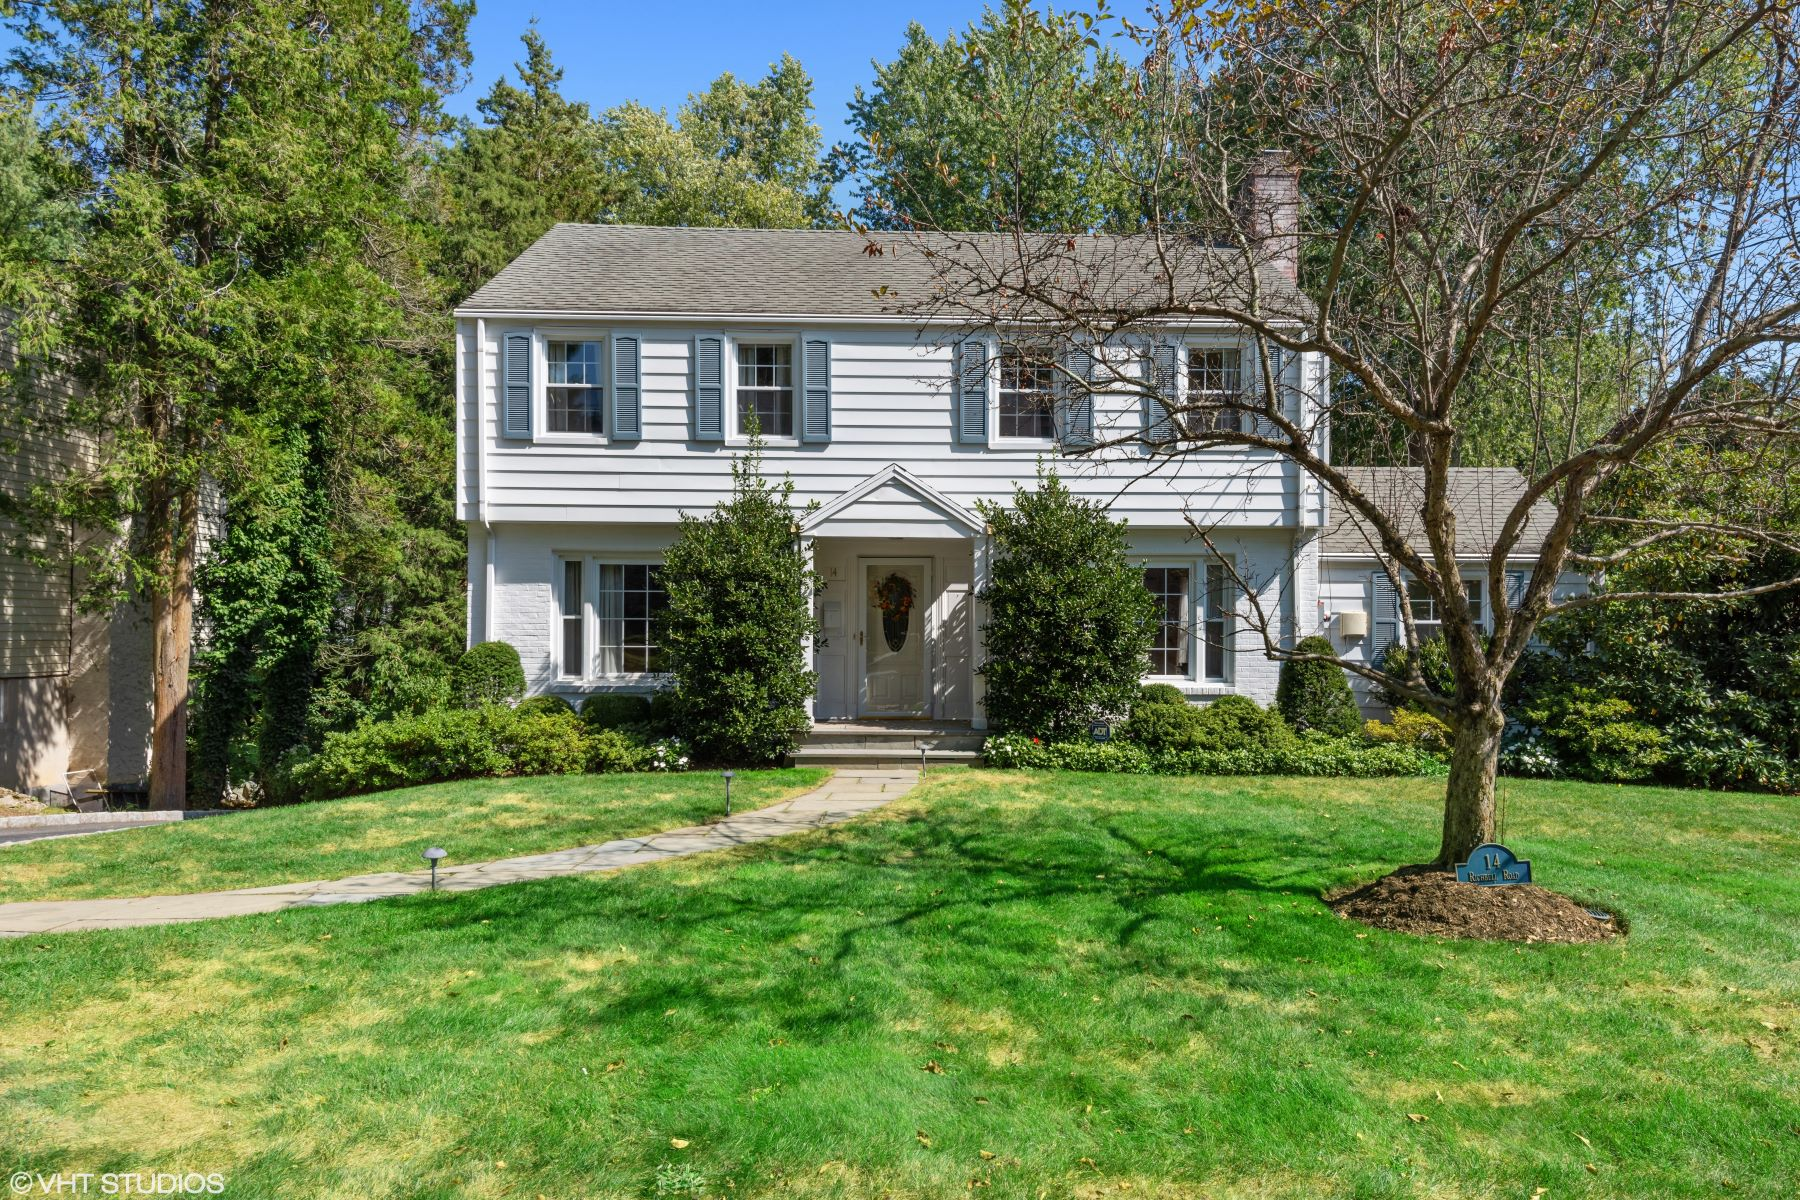 for Sale at Lovely Center Hall Colonial Home 14 Richbell Road White Plains, New York 10605 United States